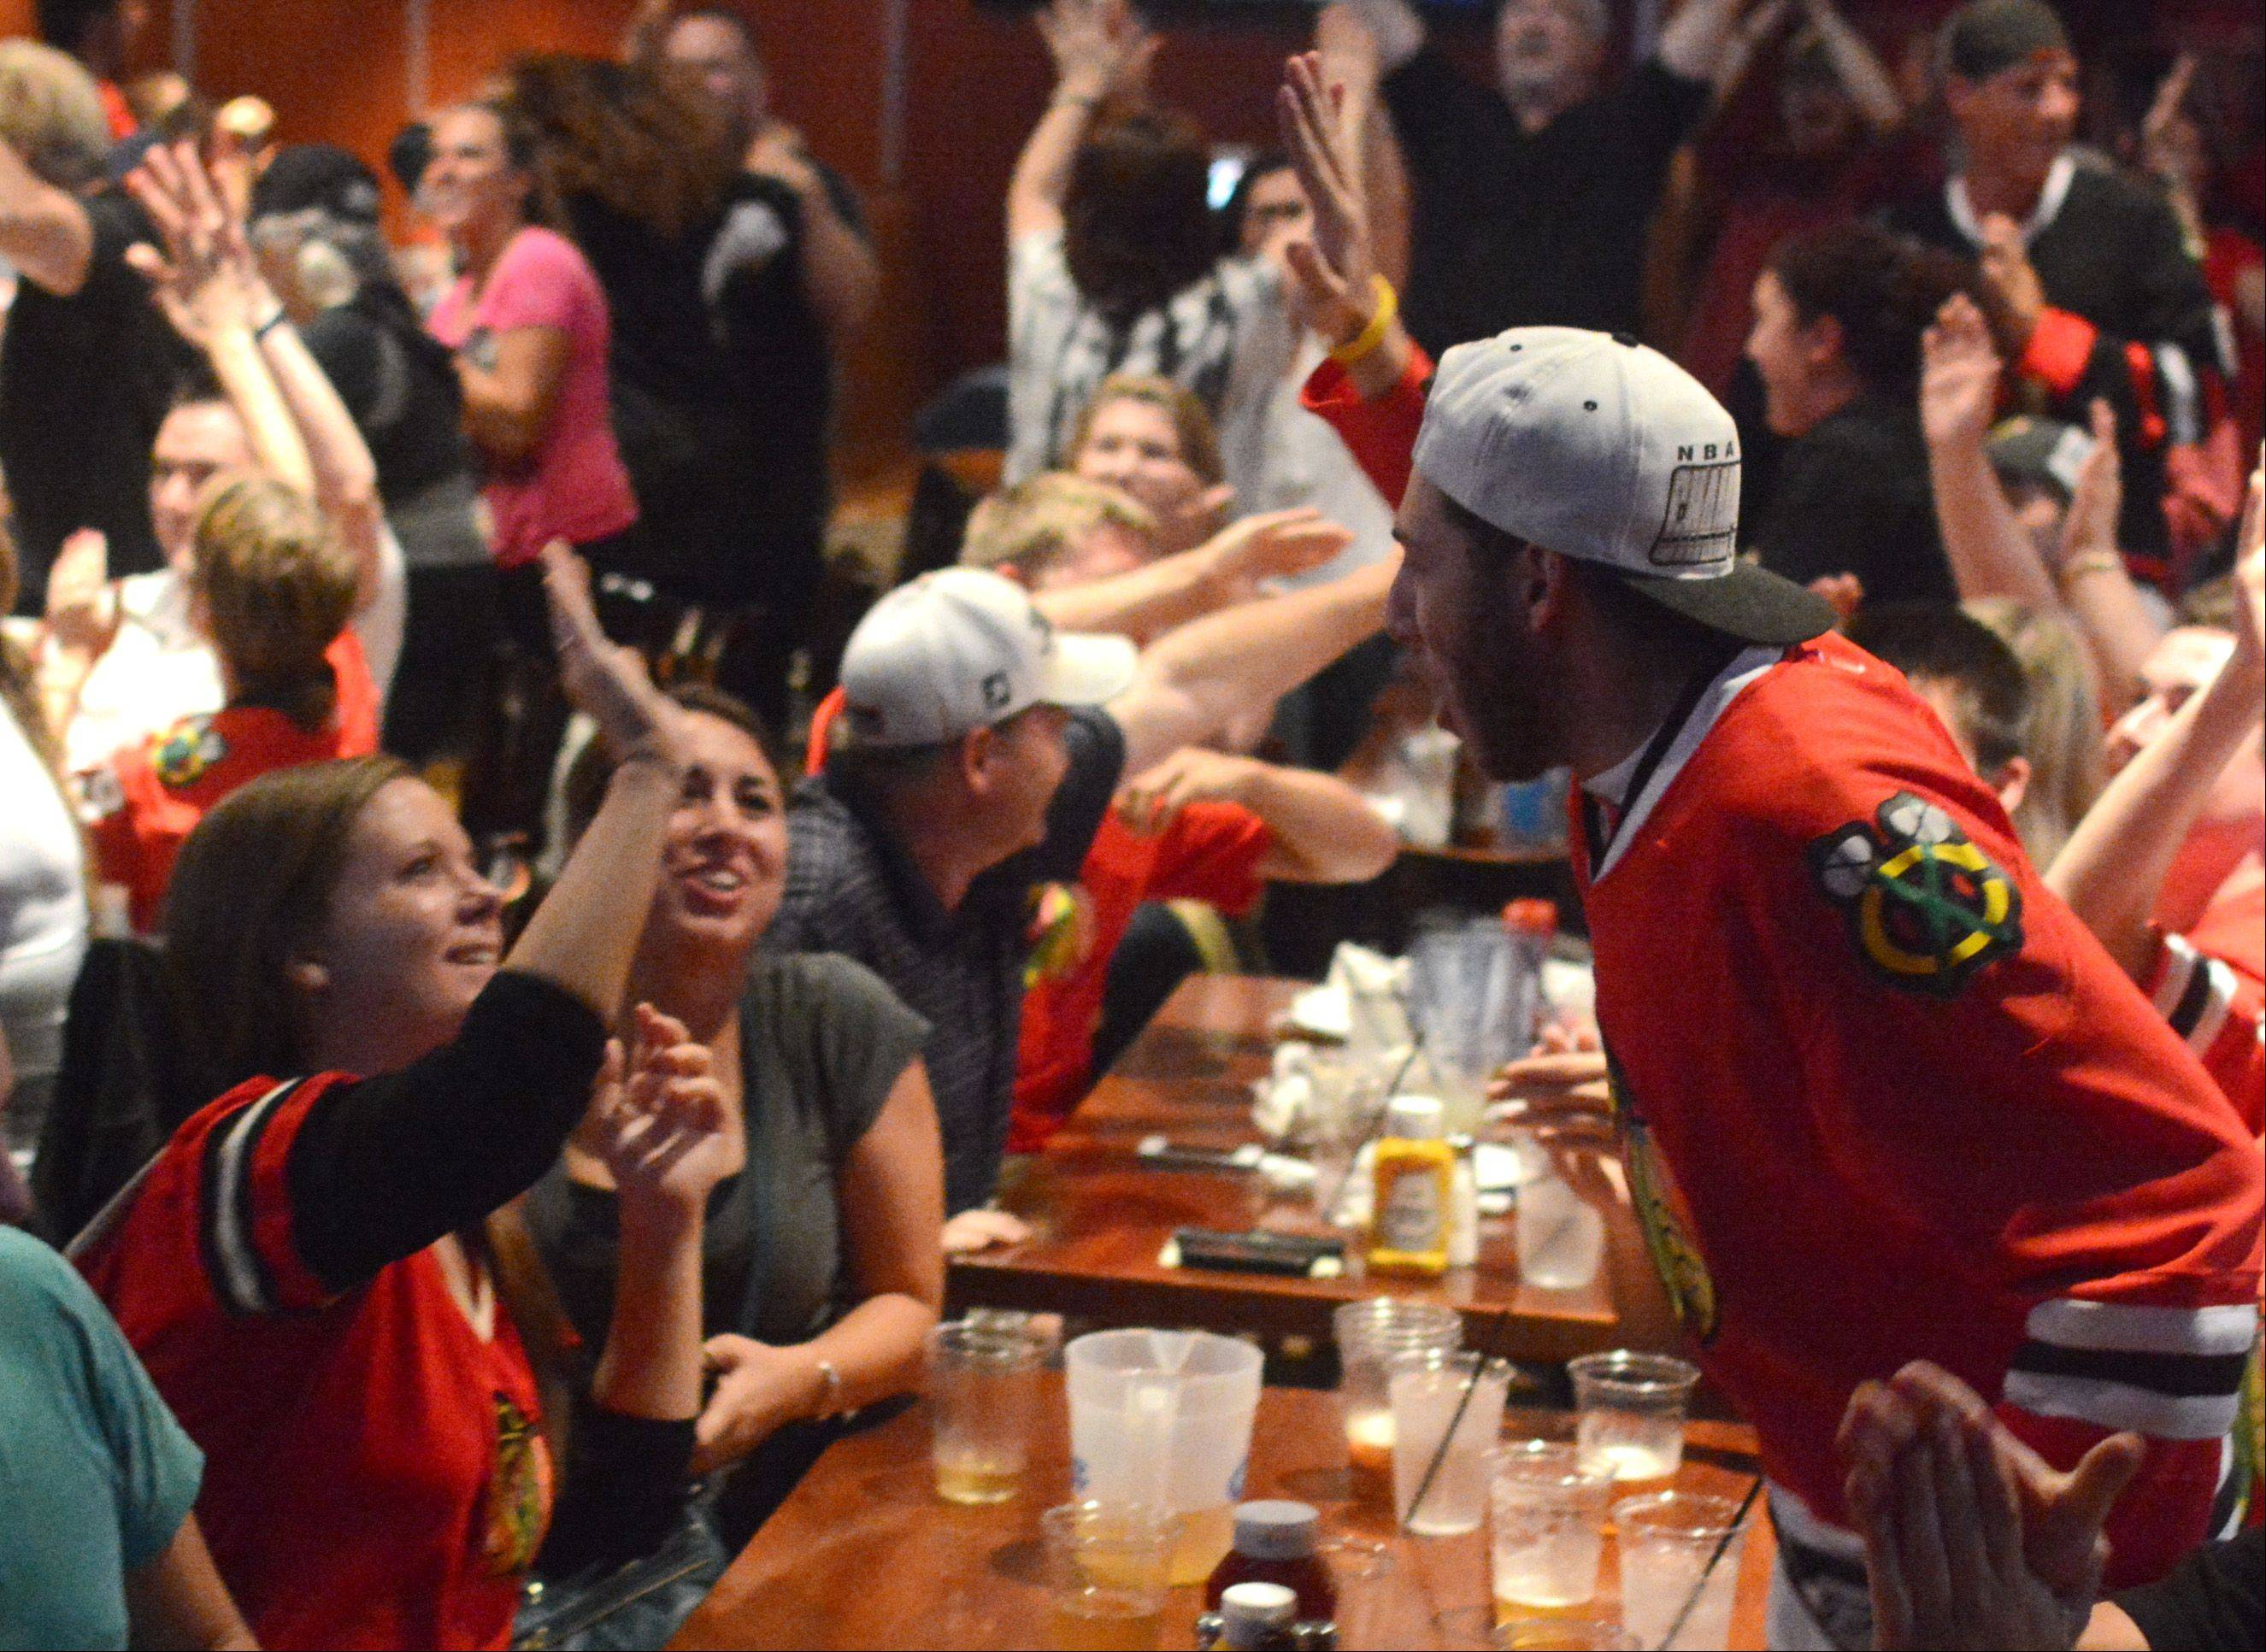 Nate Richards, right, of Buffalo Grove, high fives Jorie O'Neill of Wheeling, as the Blackhawks tie up Game 6 of the Stanley Cup Final at the Cubby Bear North in Lincolnshire Monday.